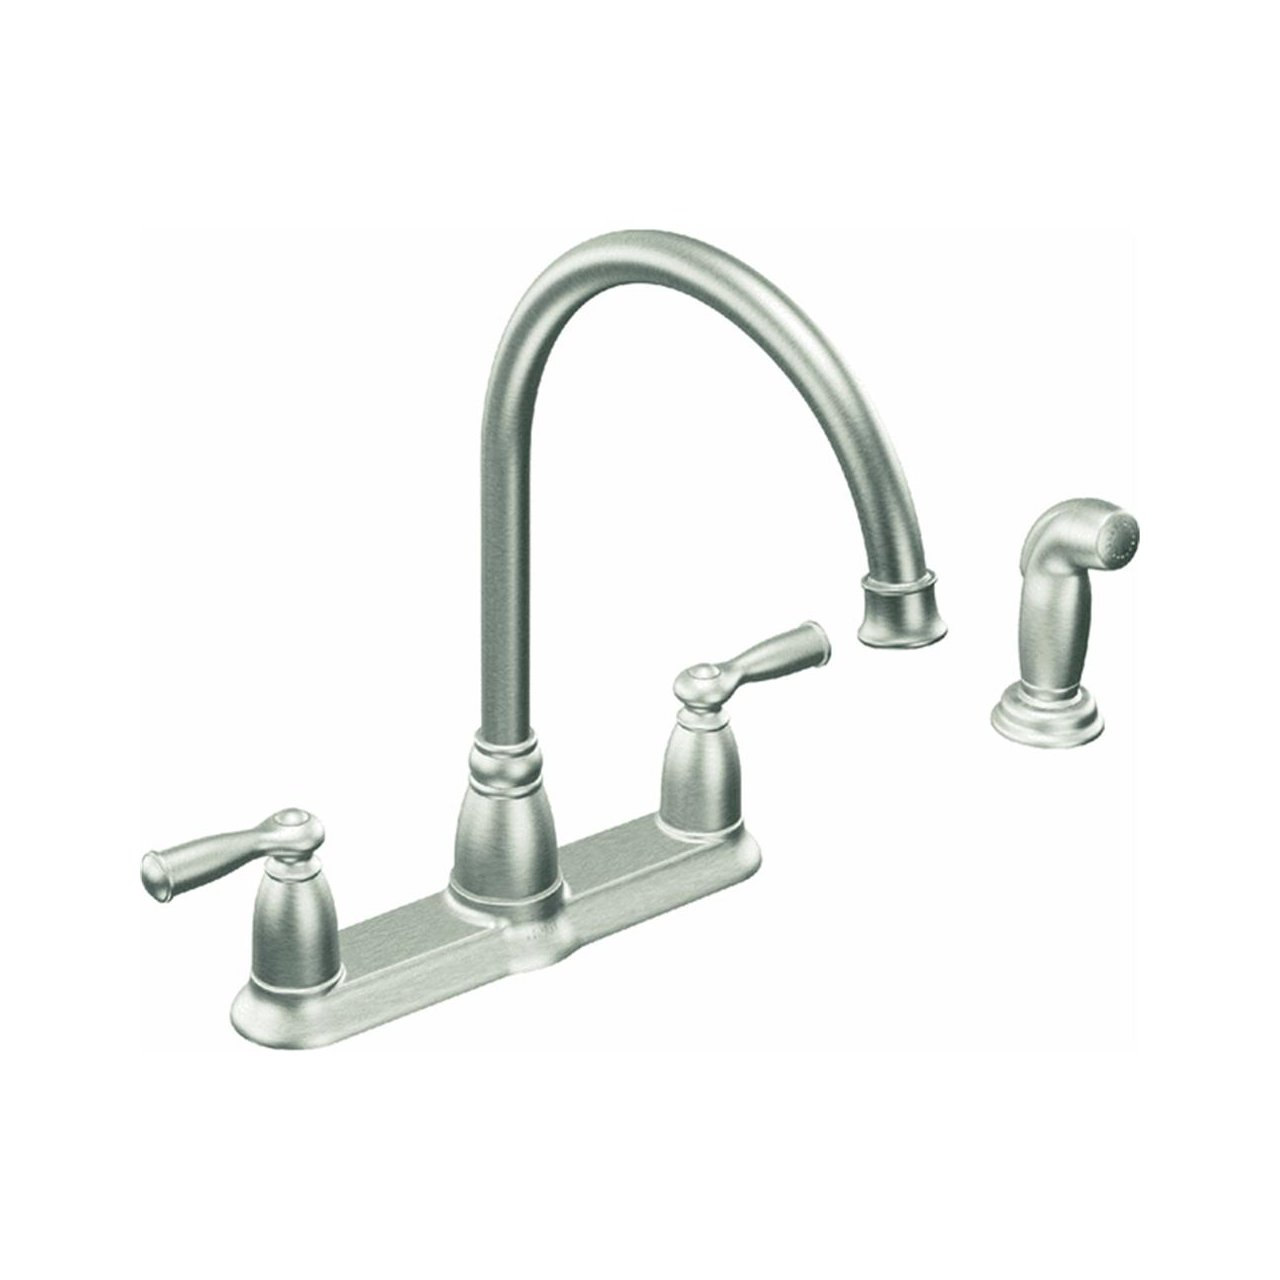 Moen, Inc. CA87000SRS Stainless Steel Kitchen Faucet   Touch On Kitchen  Sink Faucets   Amazon.com